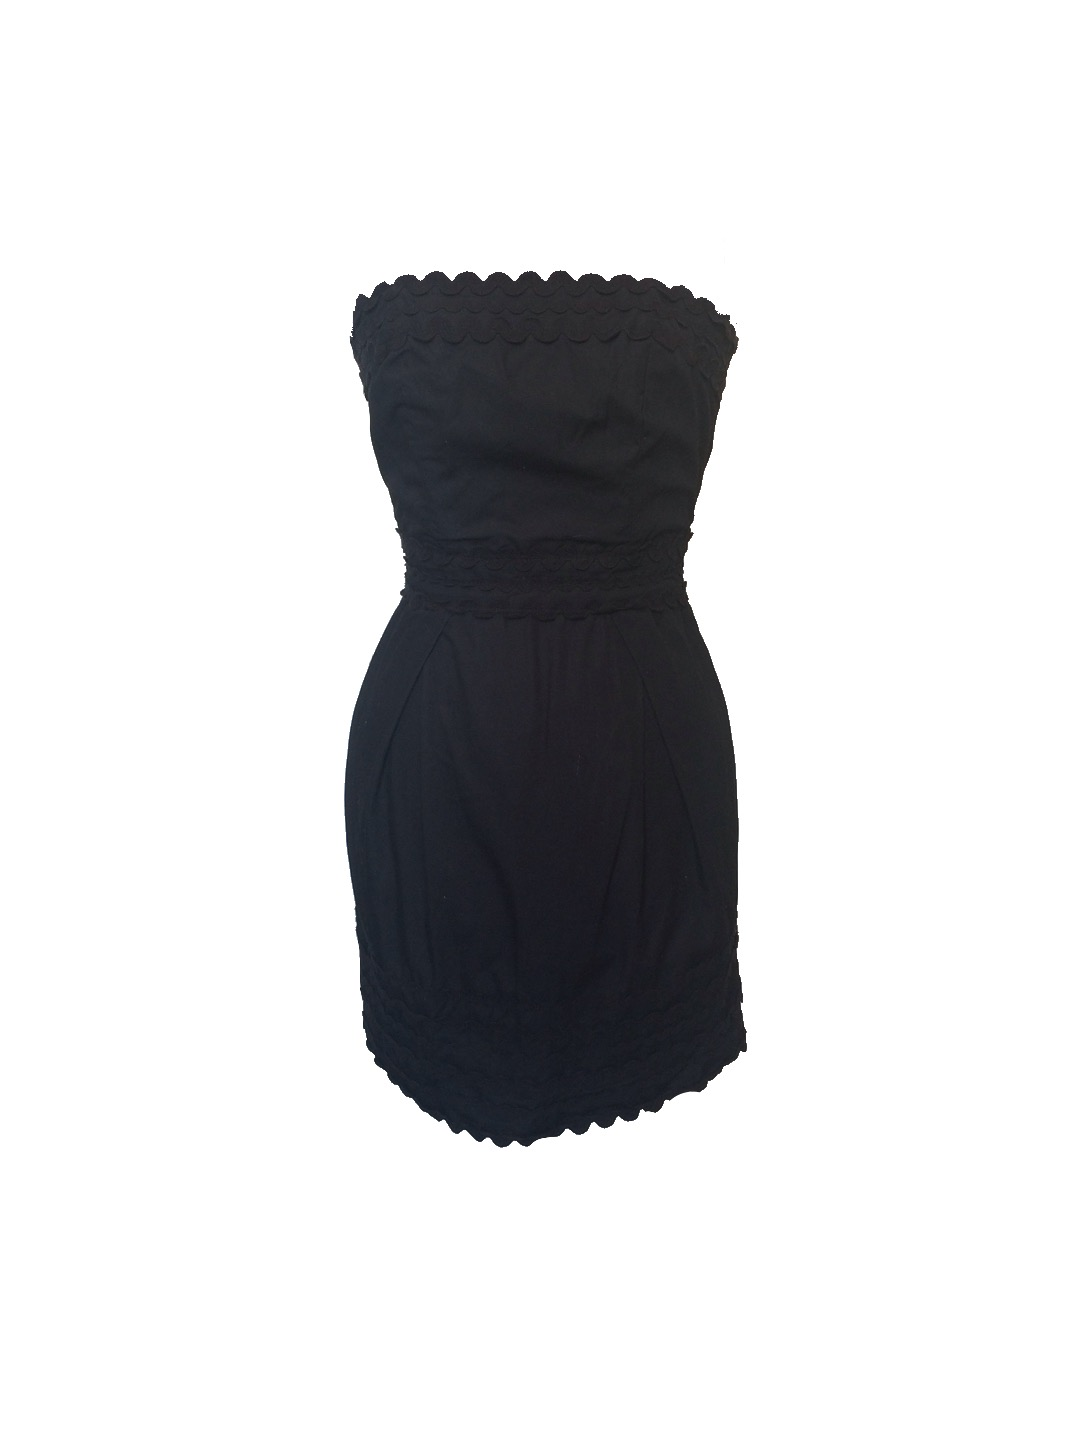 63dcccdbcb79 Size 4 French Connection Scalloped Strapless Dress - Wooden Hanger